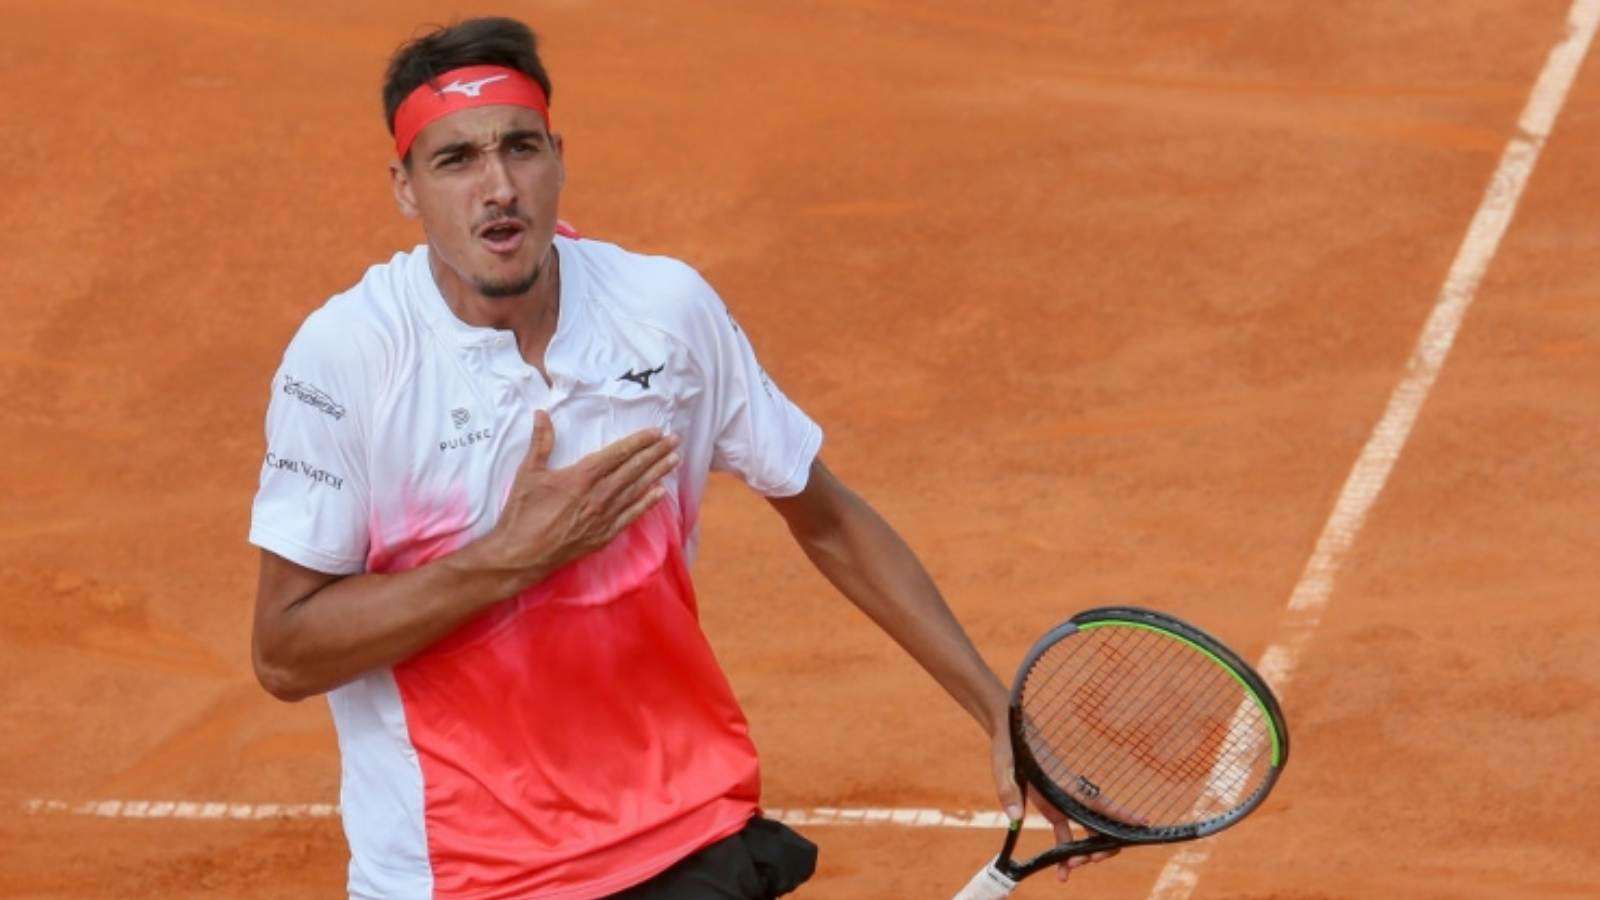 Lorenzo Sonego will be the favourite in his 1st round clash at the French Open 2021.